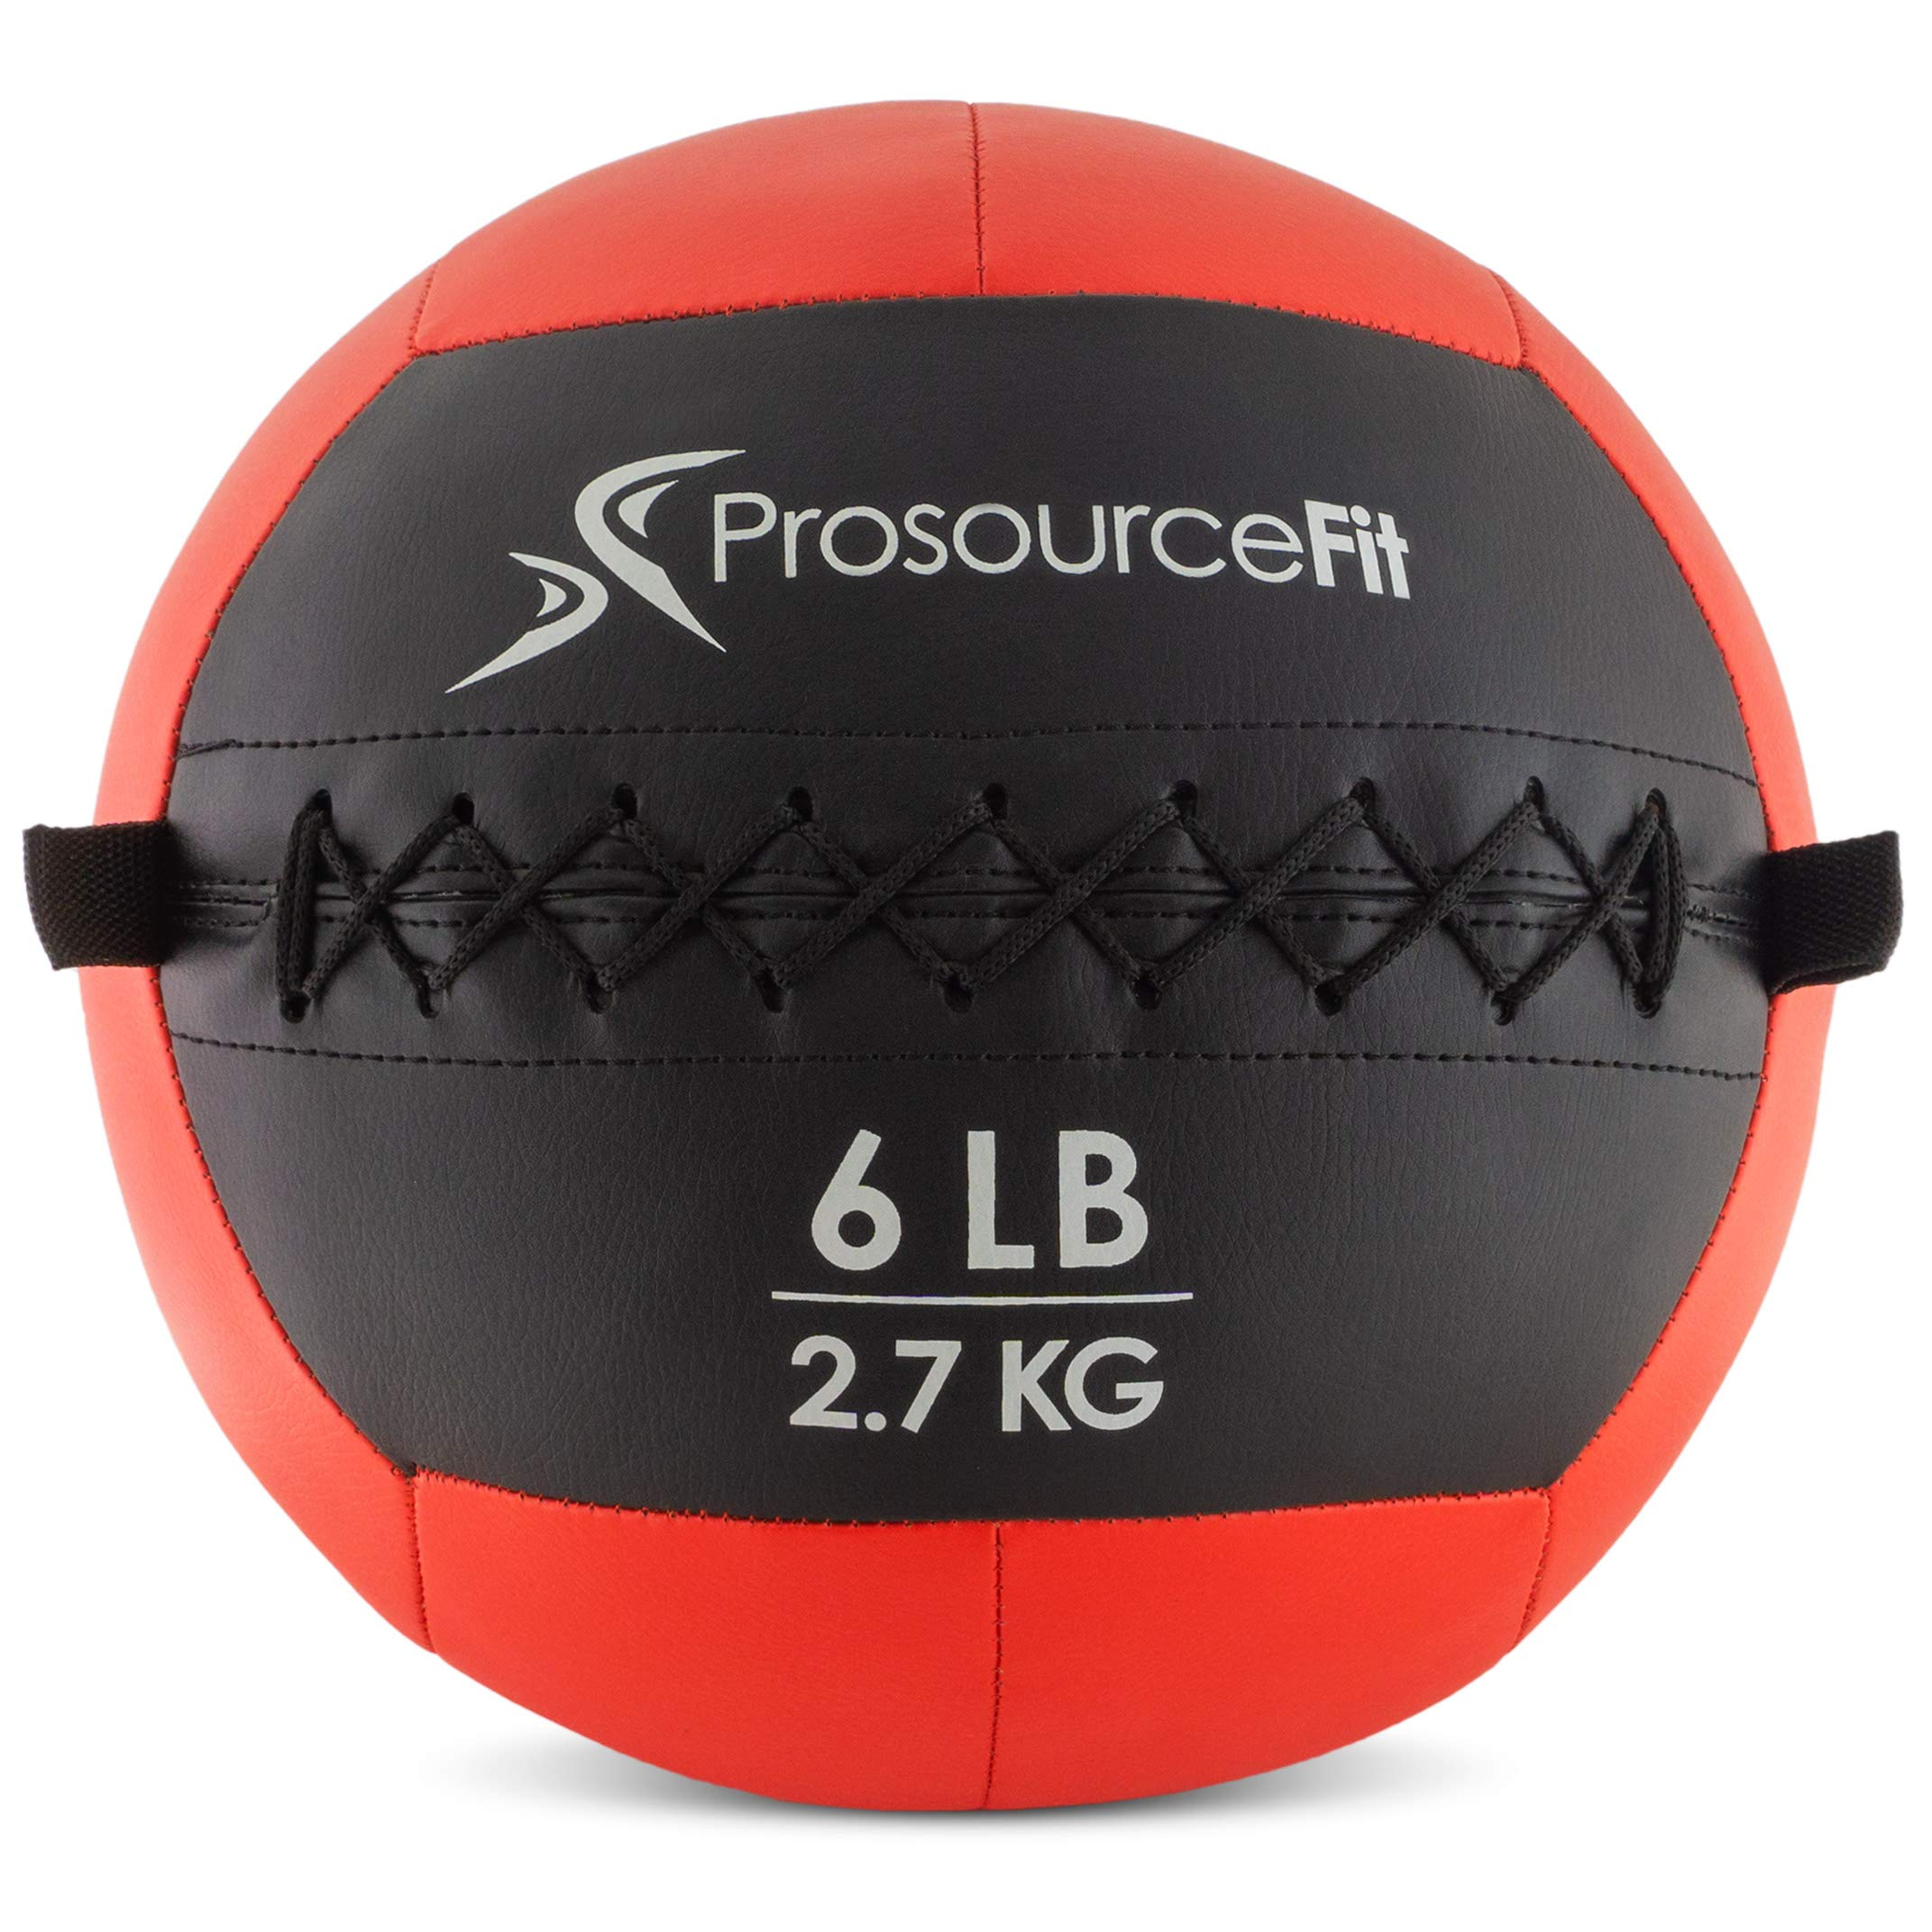 ProsourceFit Soft Medicine Balls for Wall Balls and Full Body Dynamic Exercises, Color-Coded Weights_ 6 lb by ProsourceFit